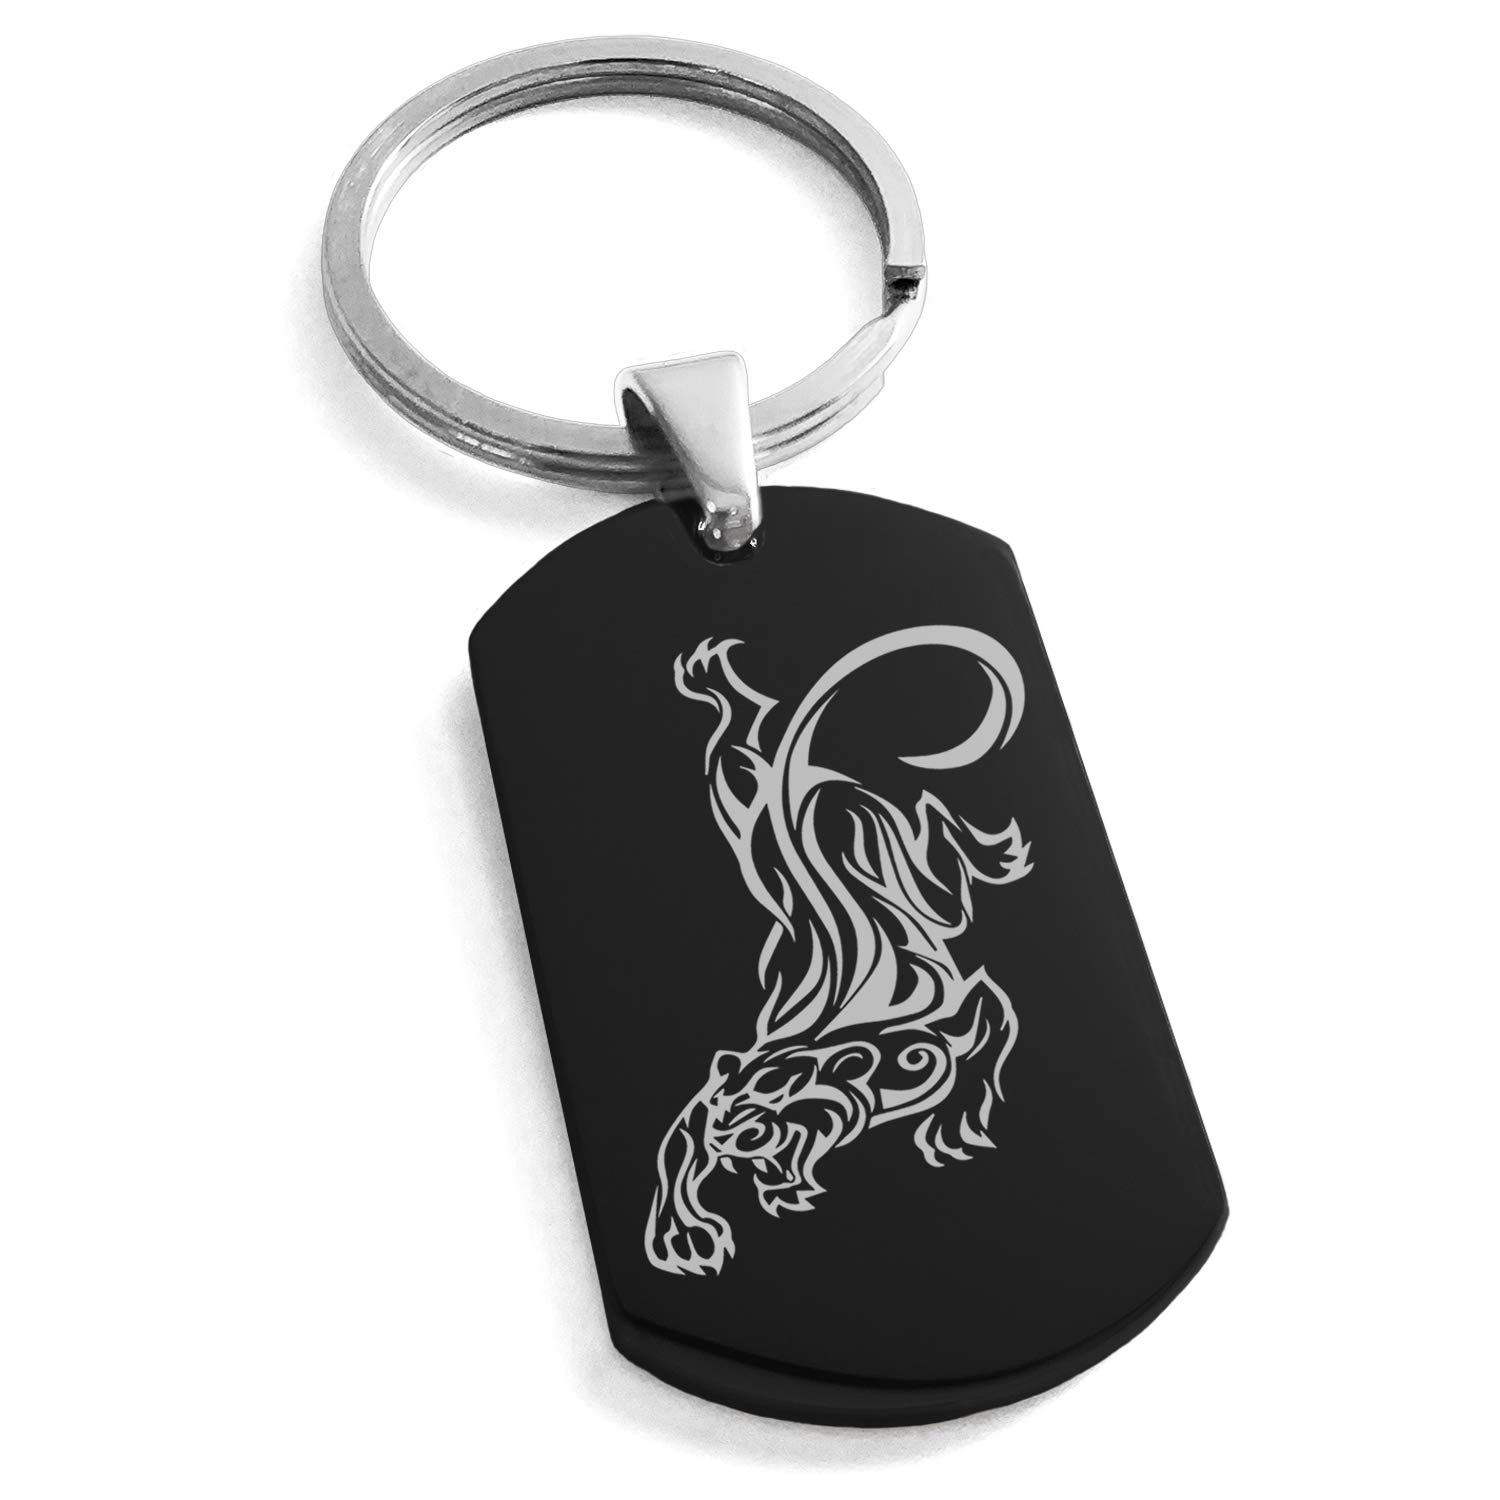 Black Stainless Steel Striking Tiger Engraved Dog Tag Keychain Keyring